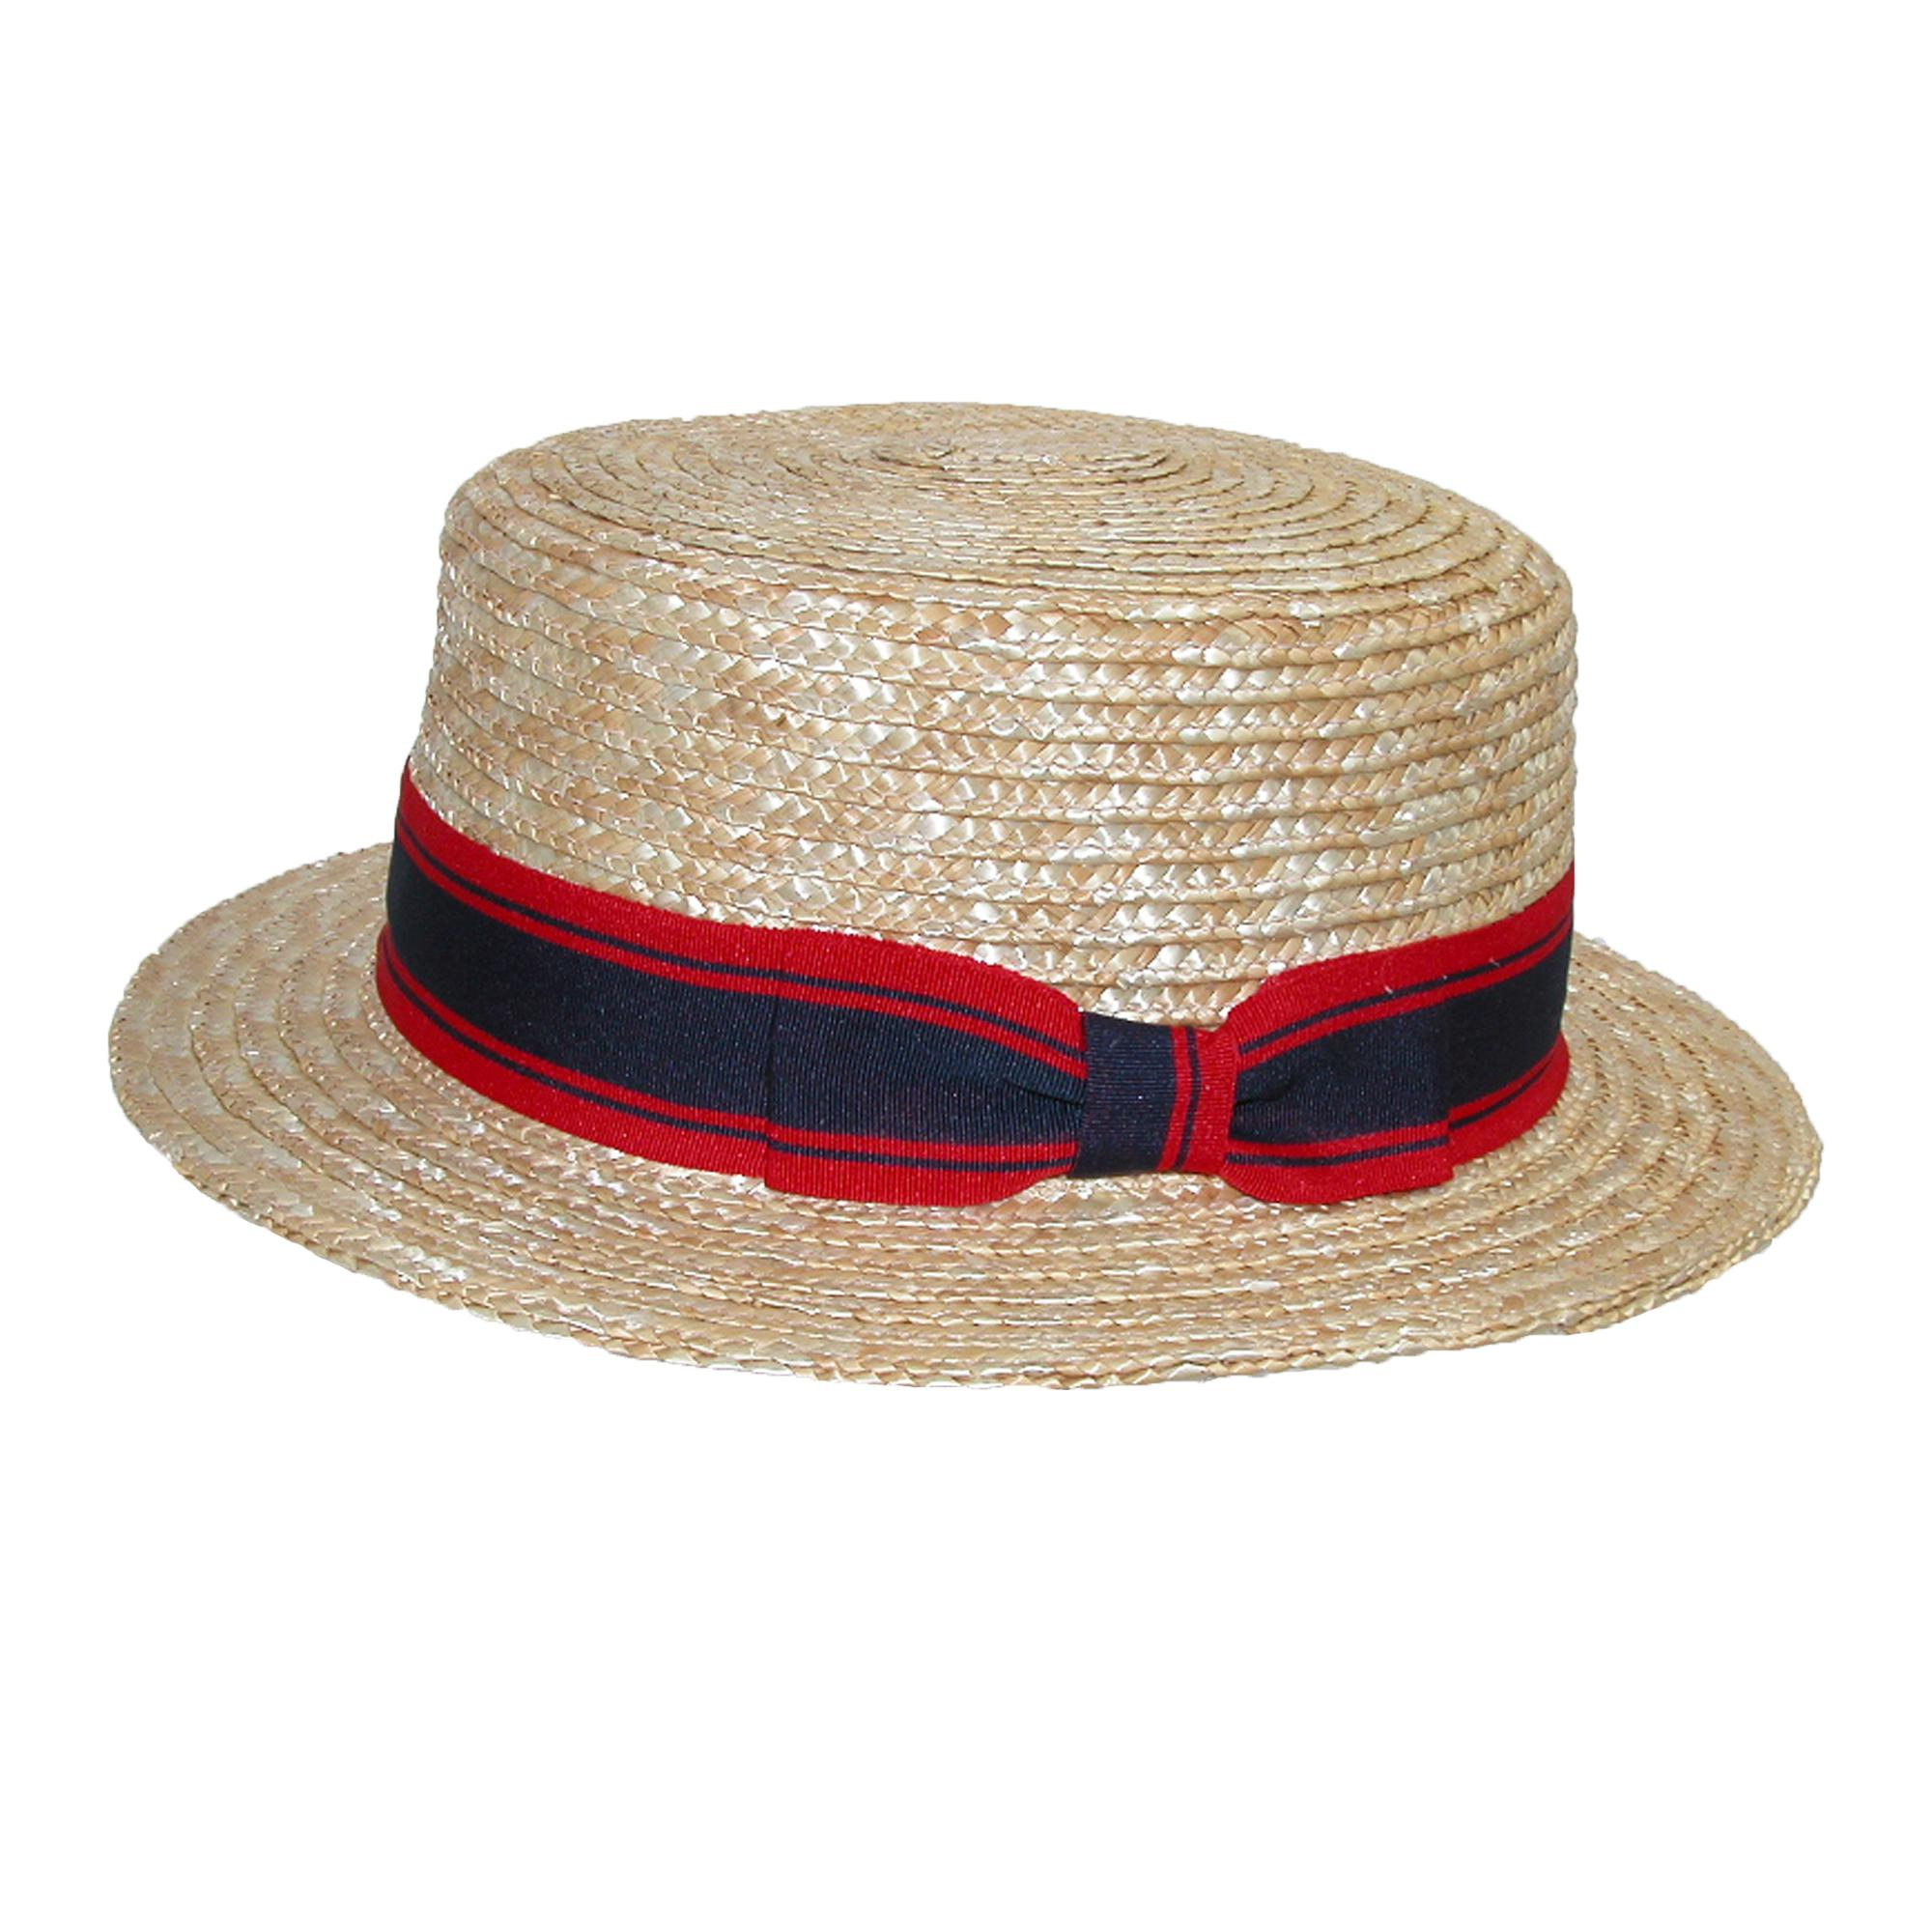 Jeanne_Simmons_Straw_2_Inch_Brim_Grosgrain_Band_Boater_Hat_-